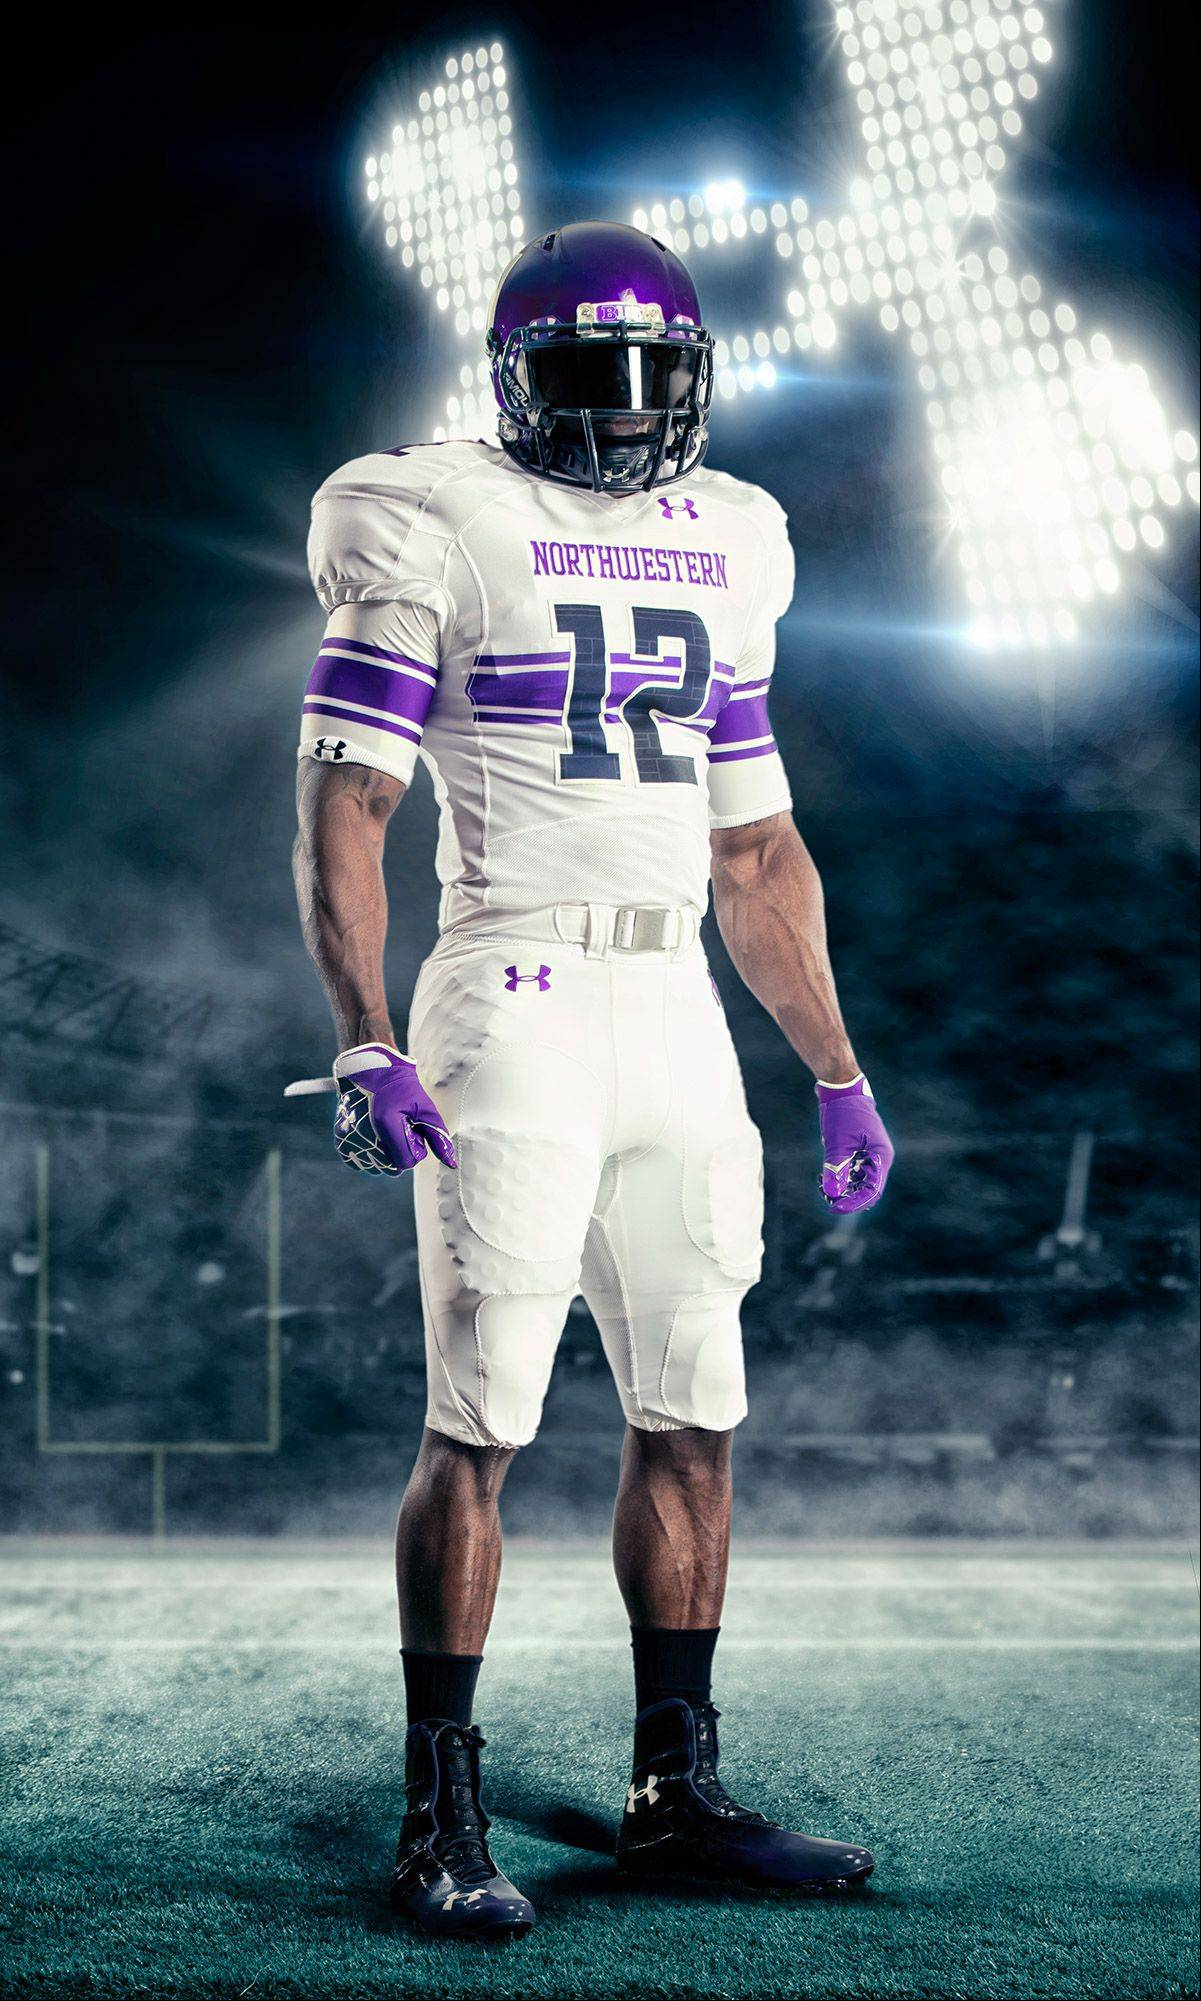 Northwestern�s new uniform in partnership with Under Armor